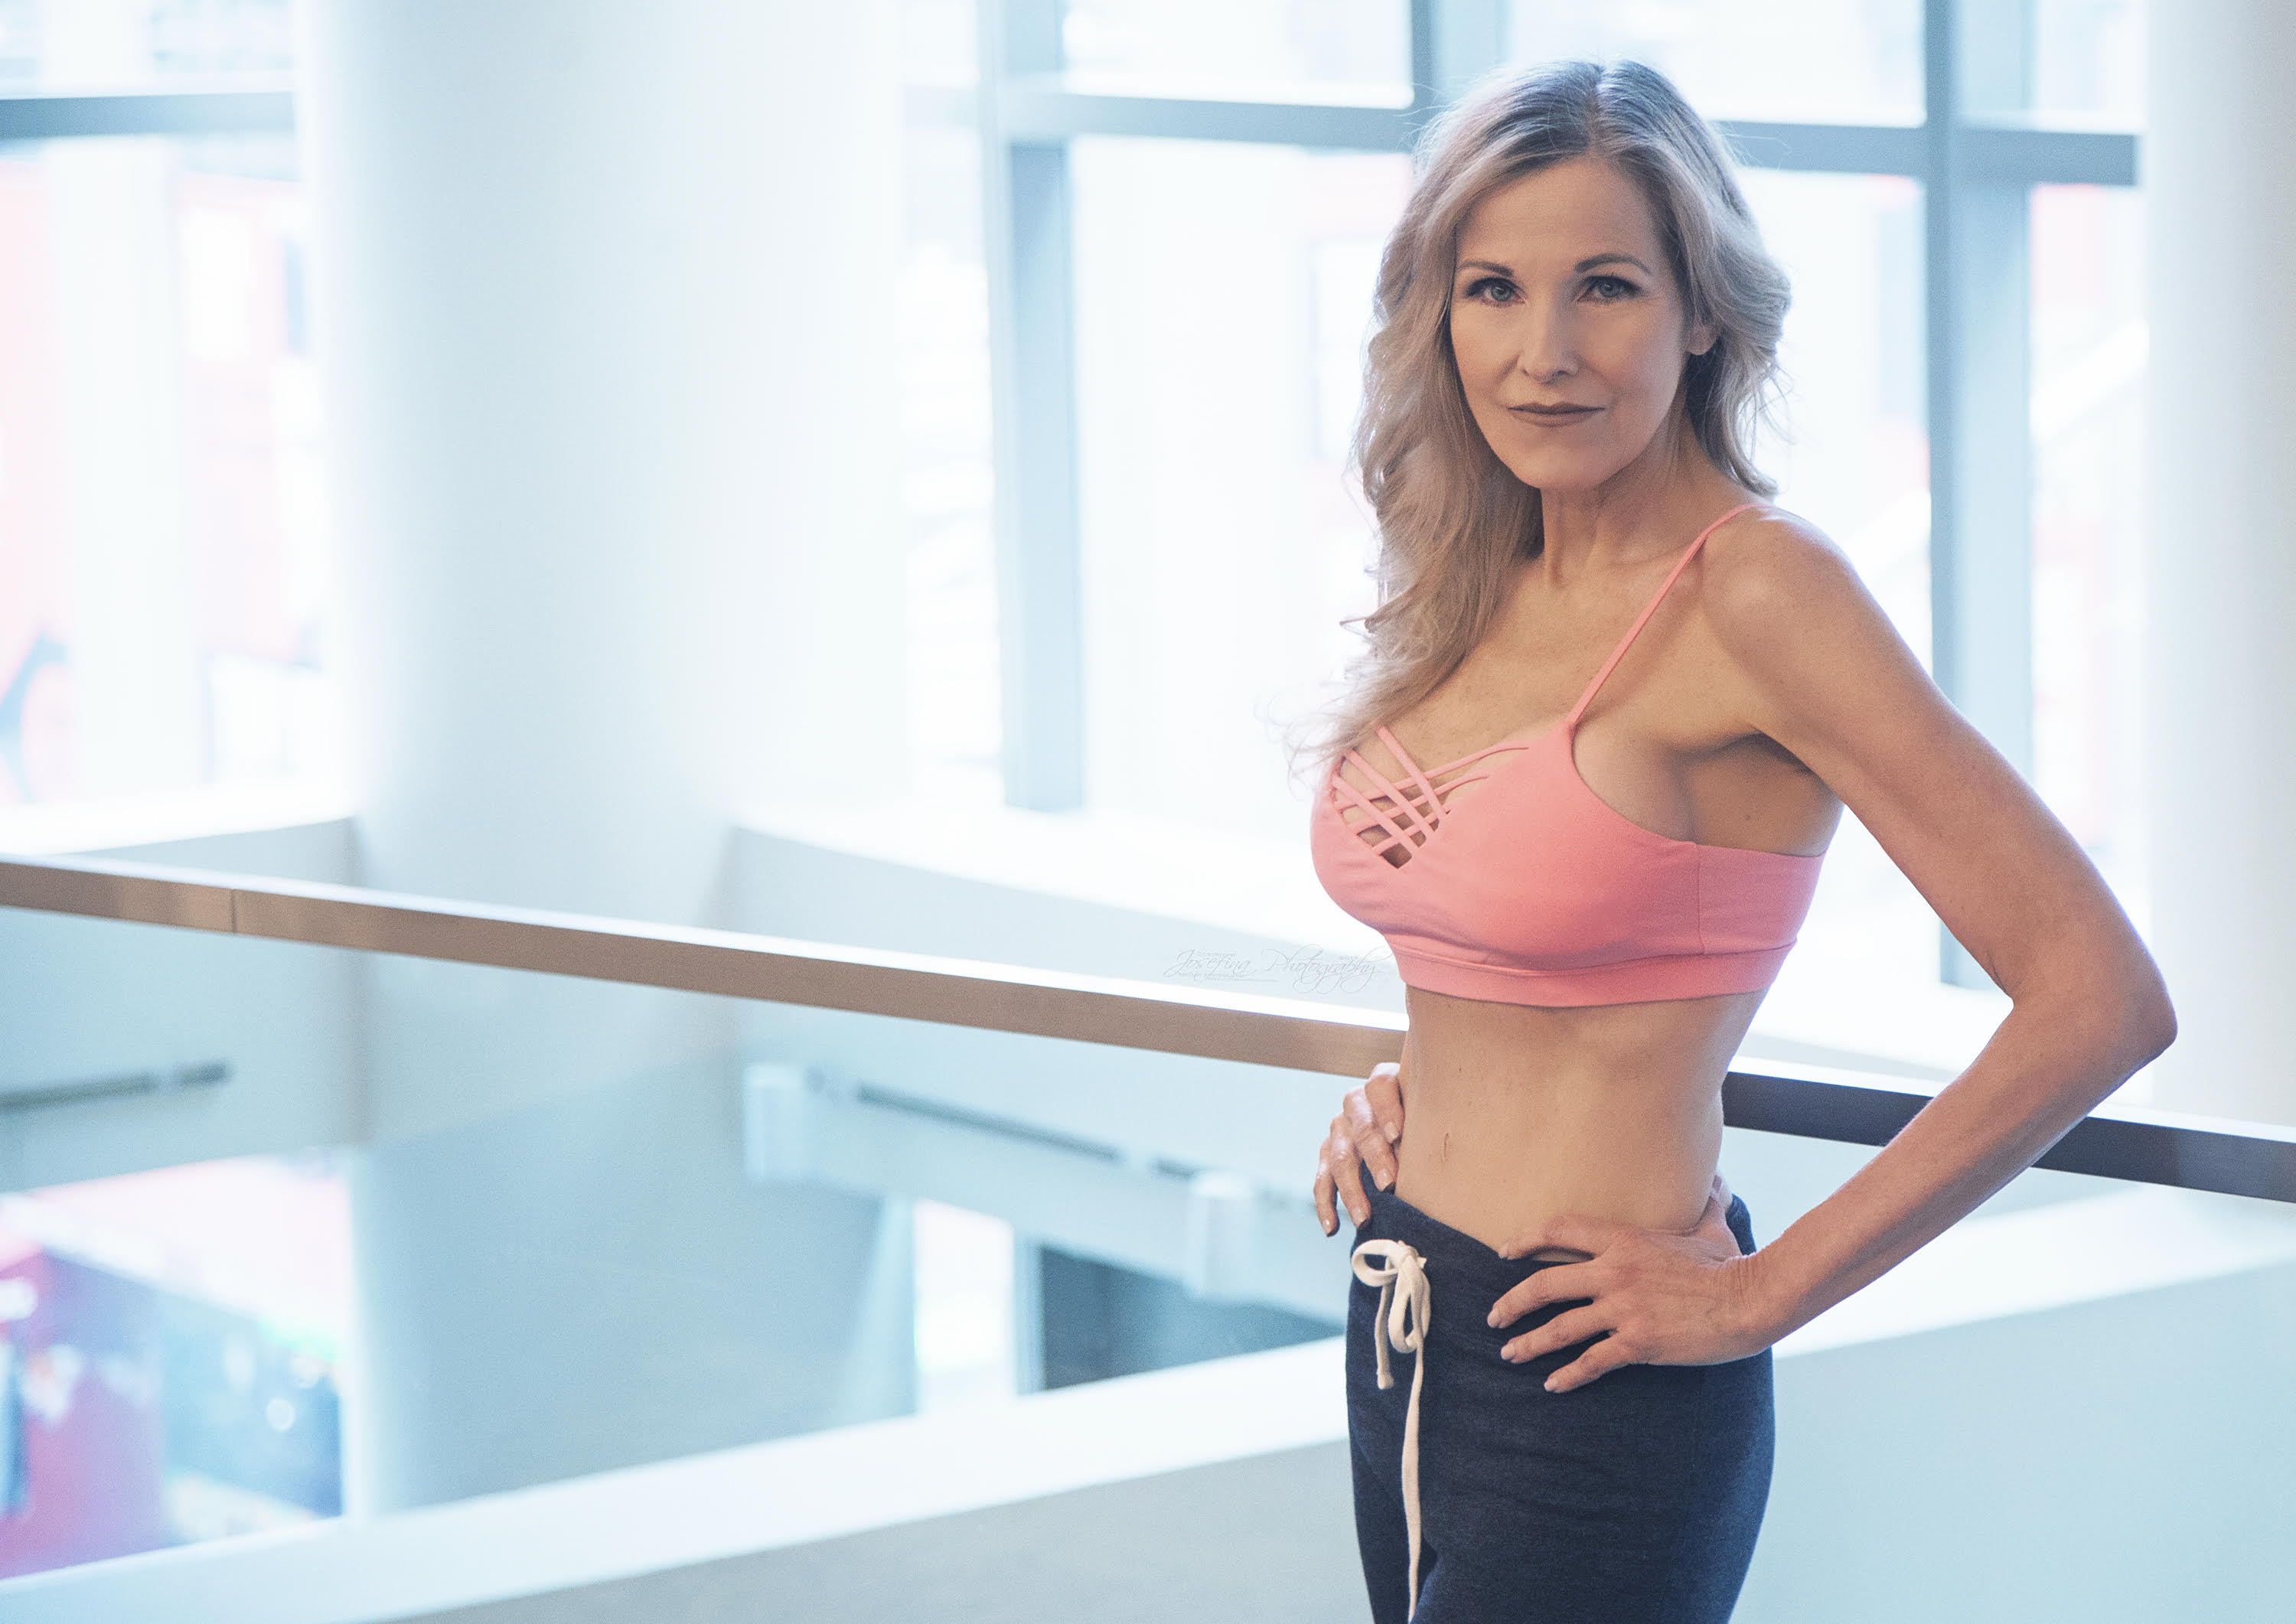 a9c026053 4 Reasons Why All Breasts in a Sports Bra Matter - Thrive Global